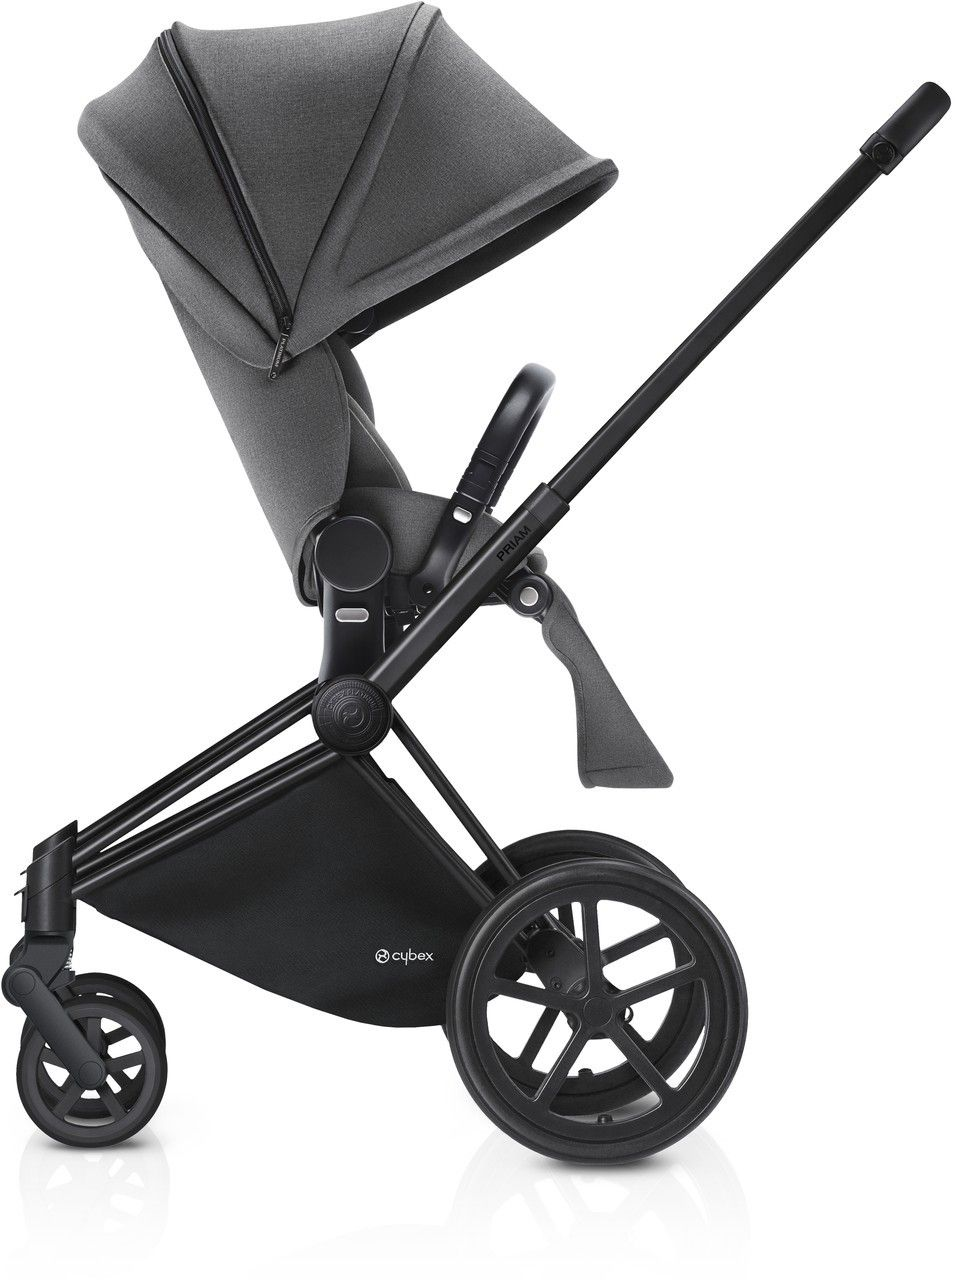 Kinderwagen Easywalker Duo Cybex Priam Kinderwagen Set Schwarz Manhattan Grey Cybex